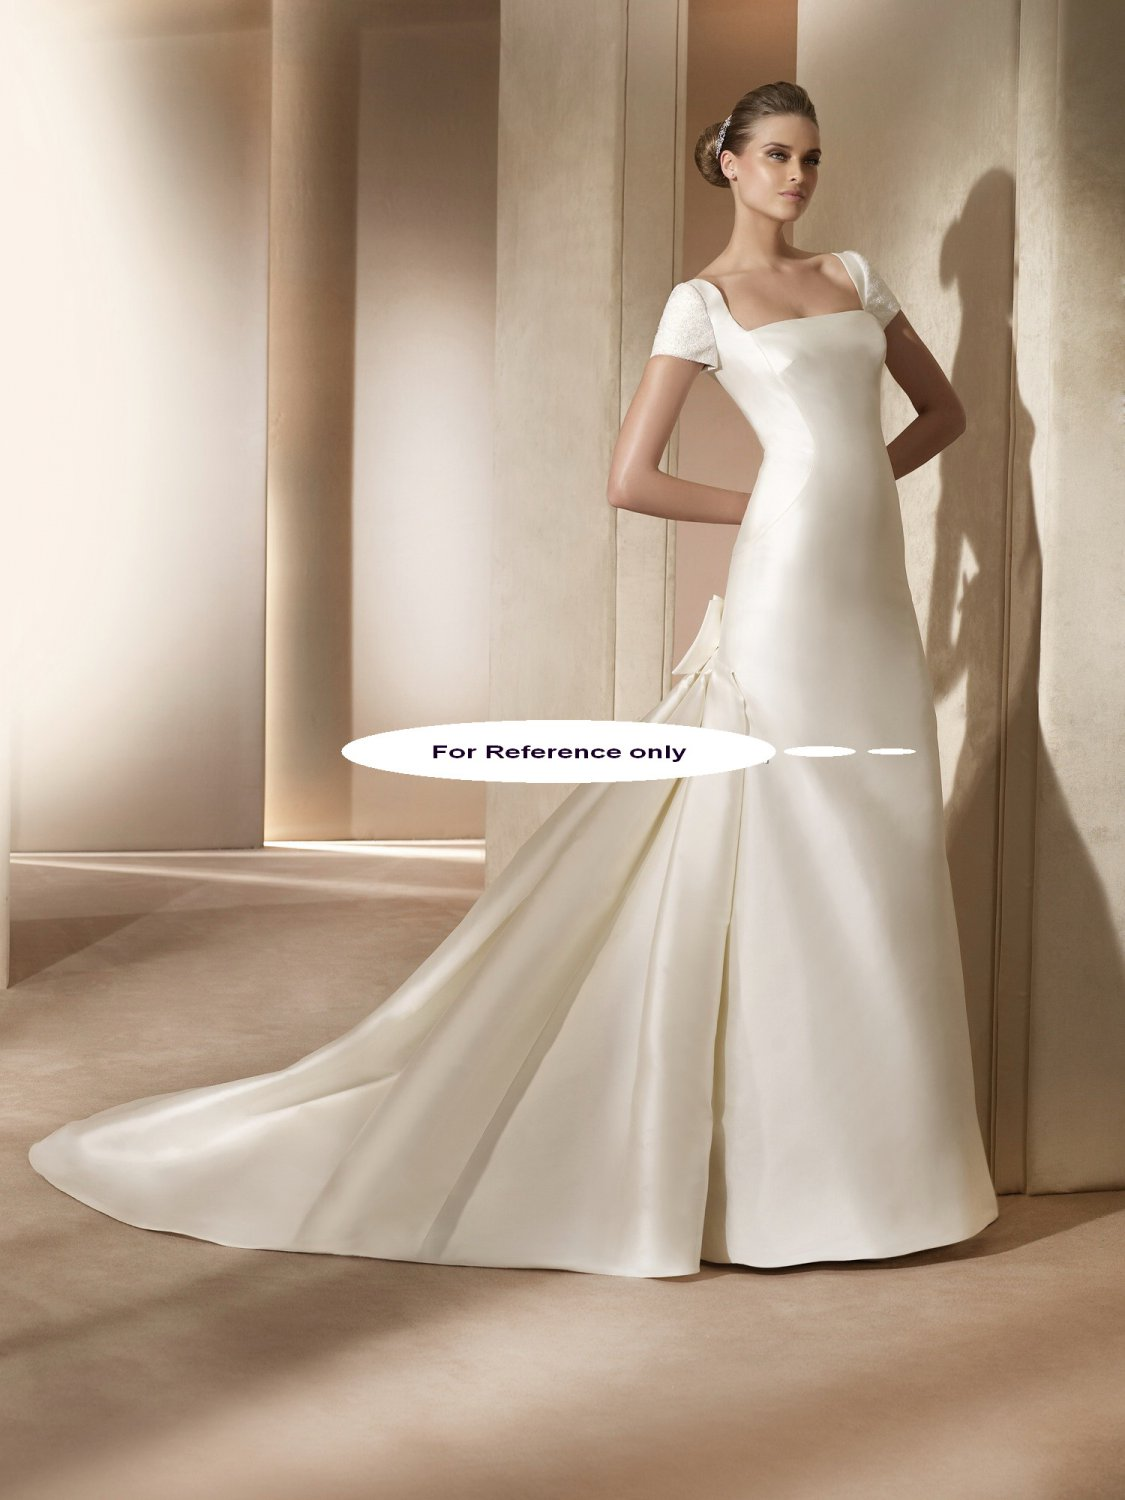 Square neck sheathwedding gown-Amatista